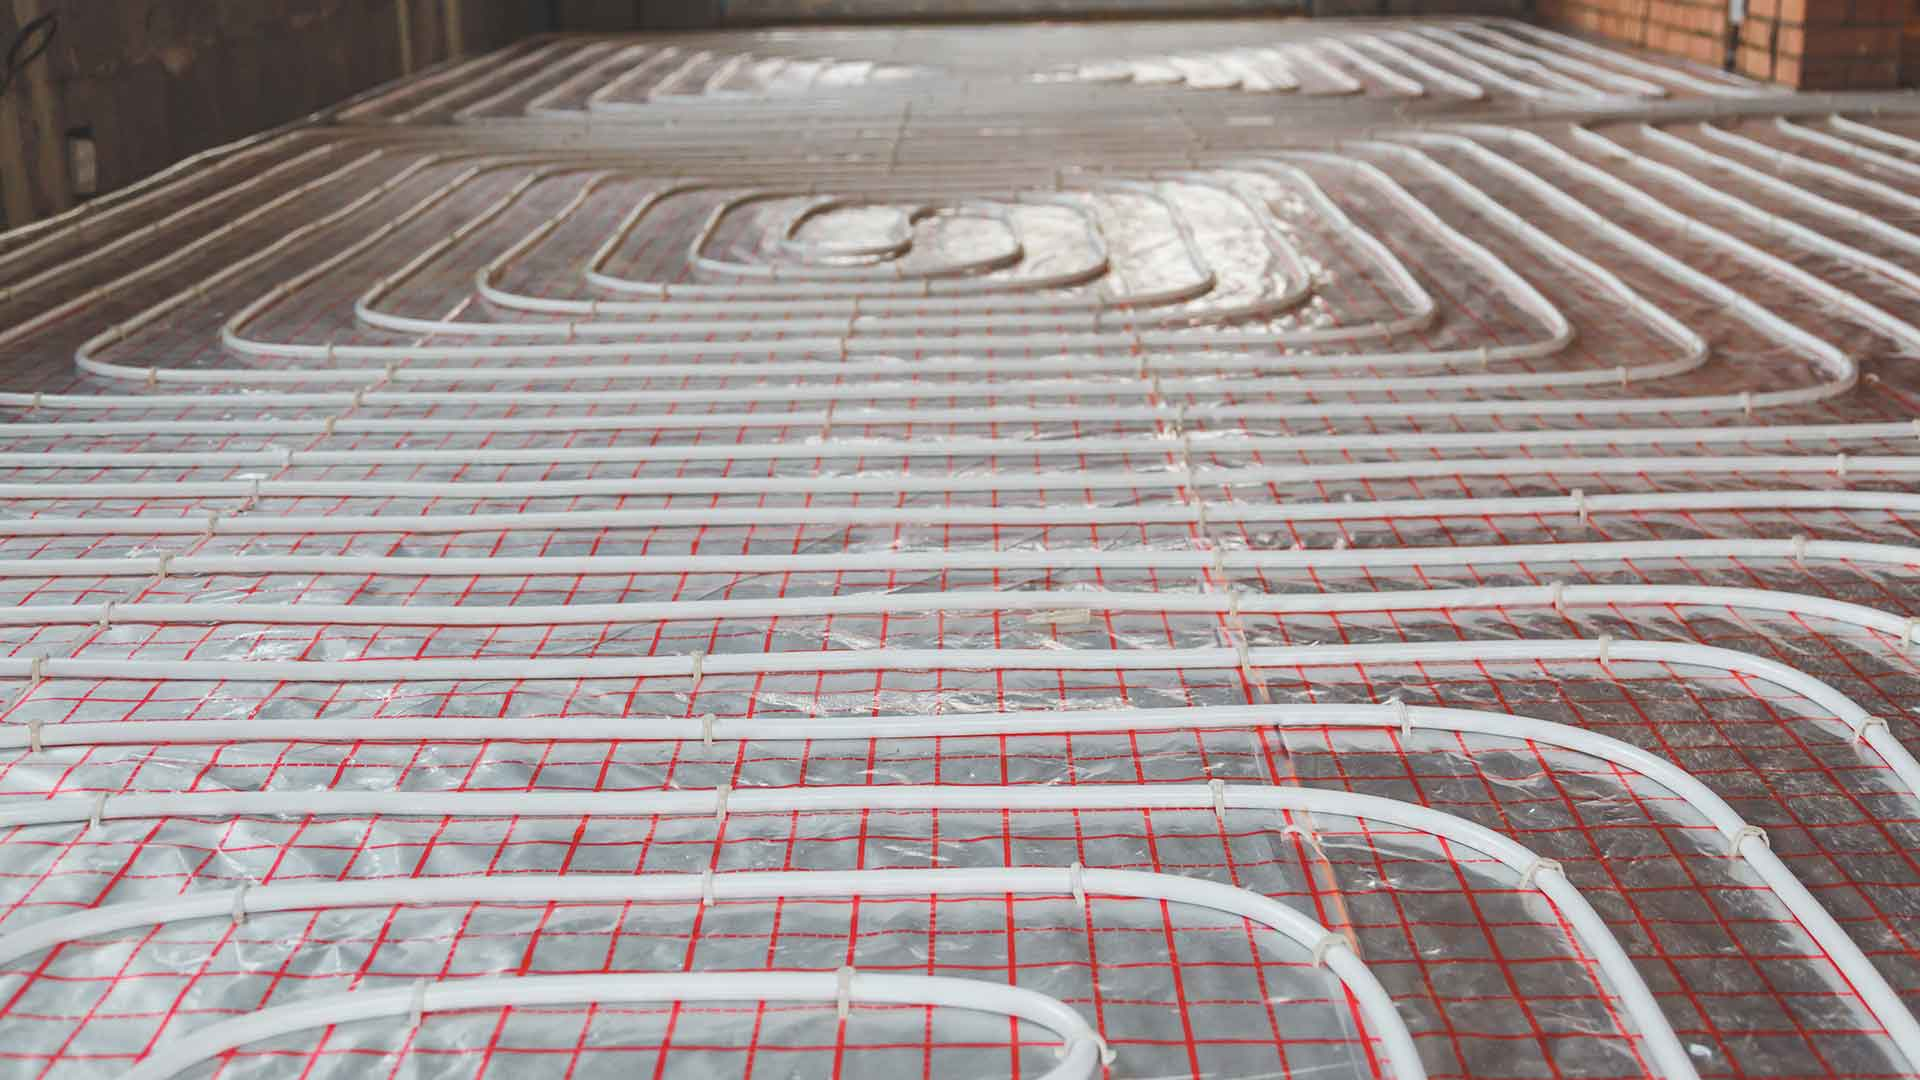 A run of underfloor heating cables ready to be laid over